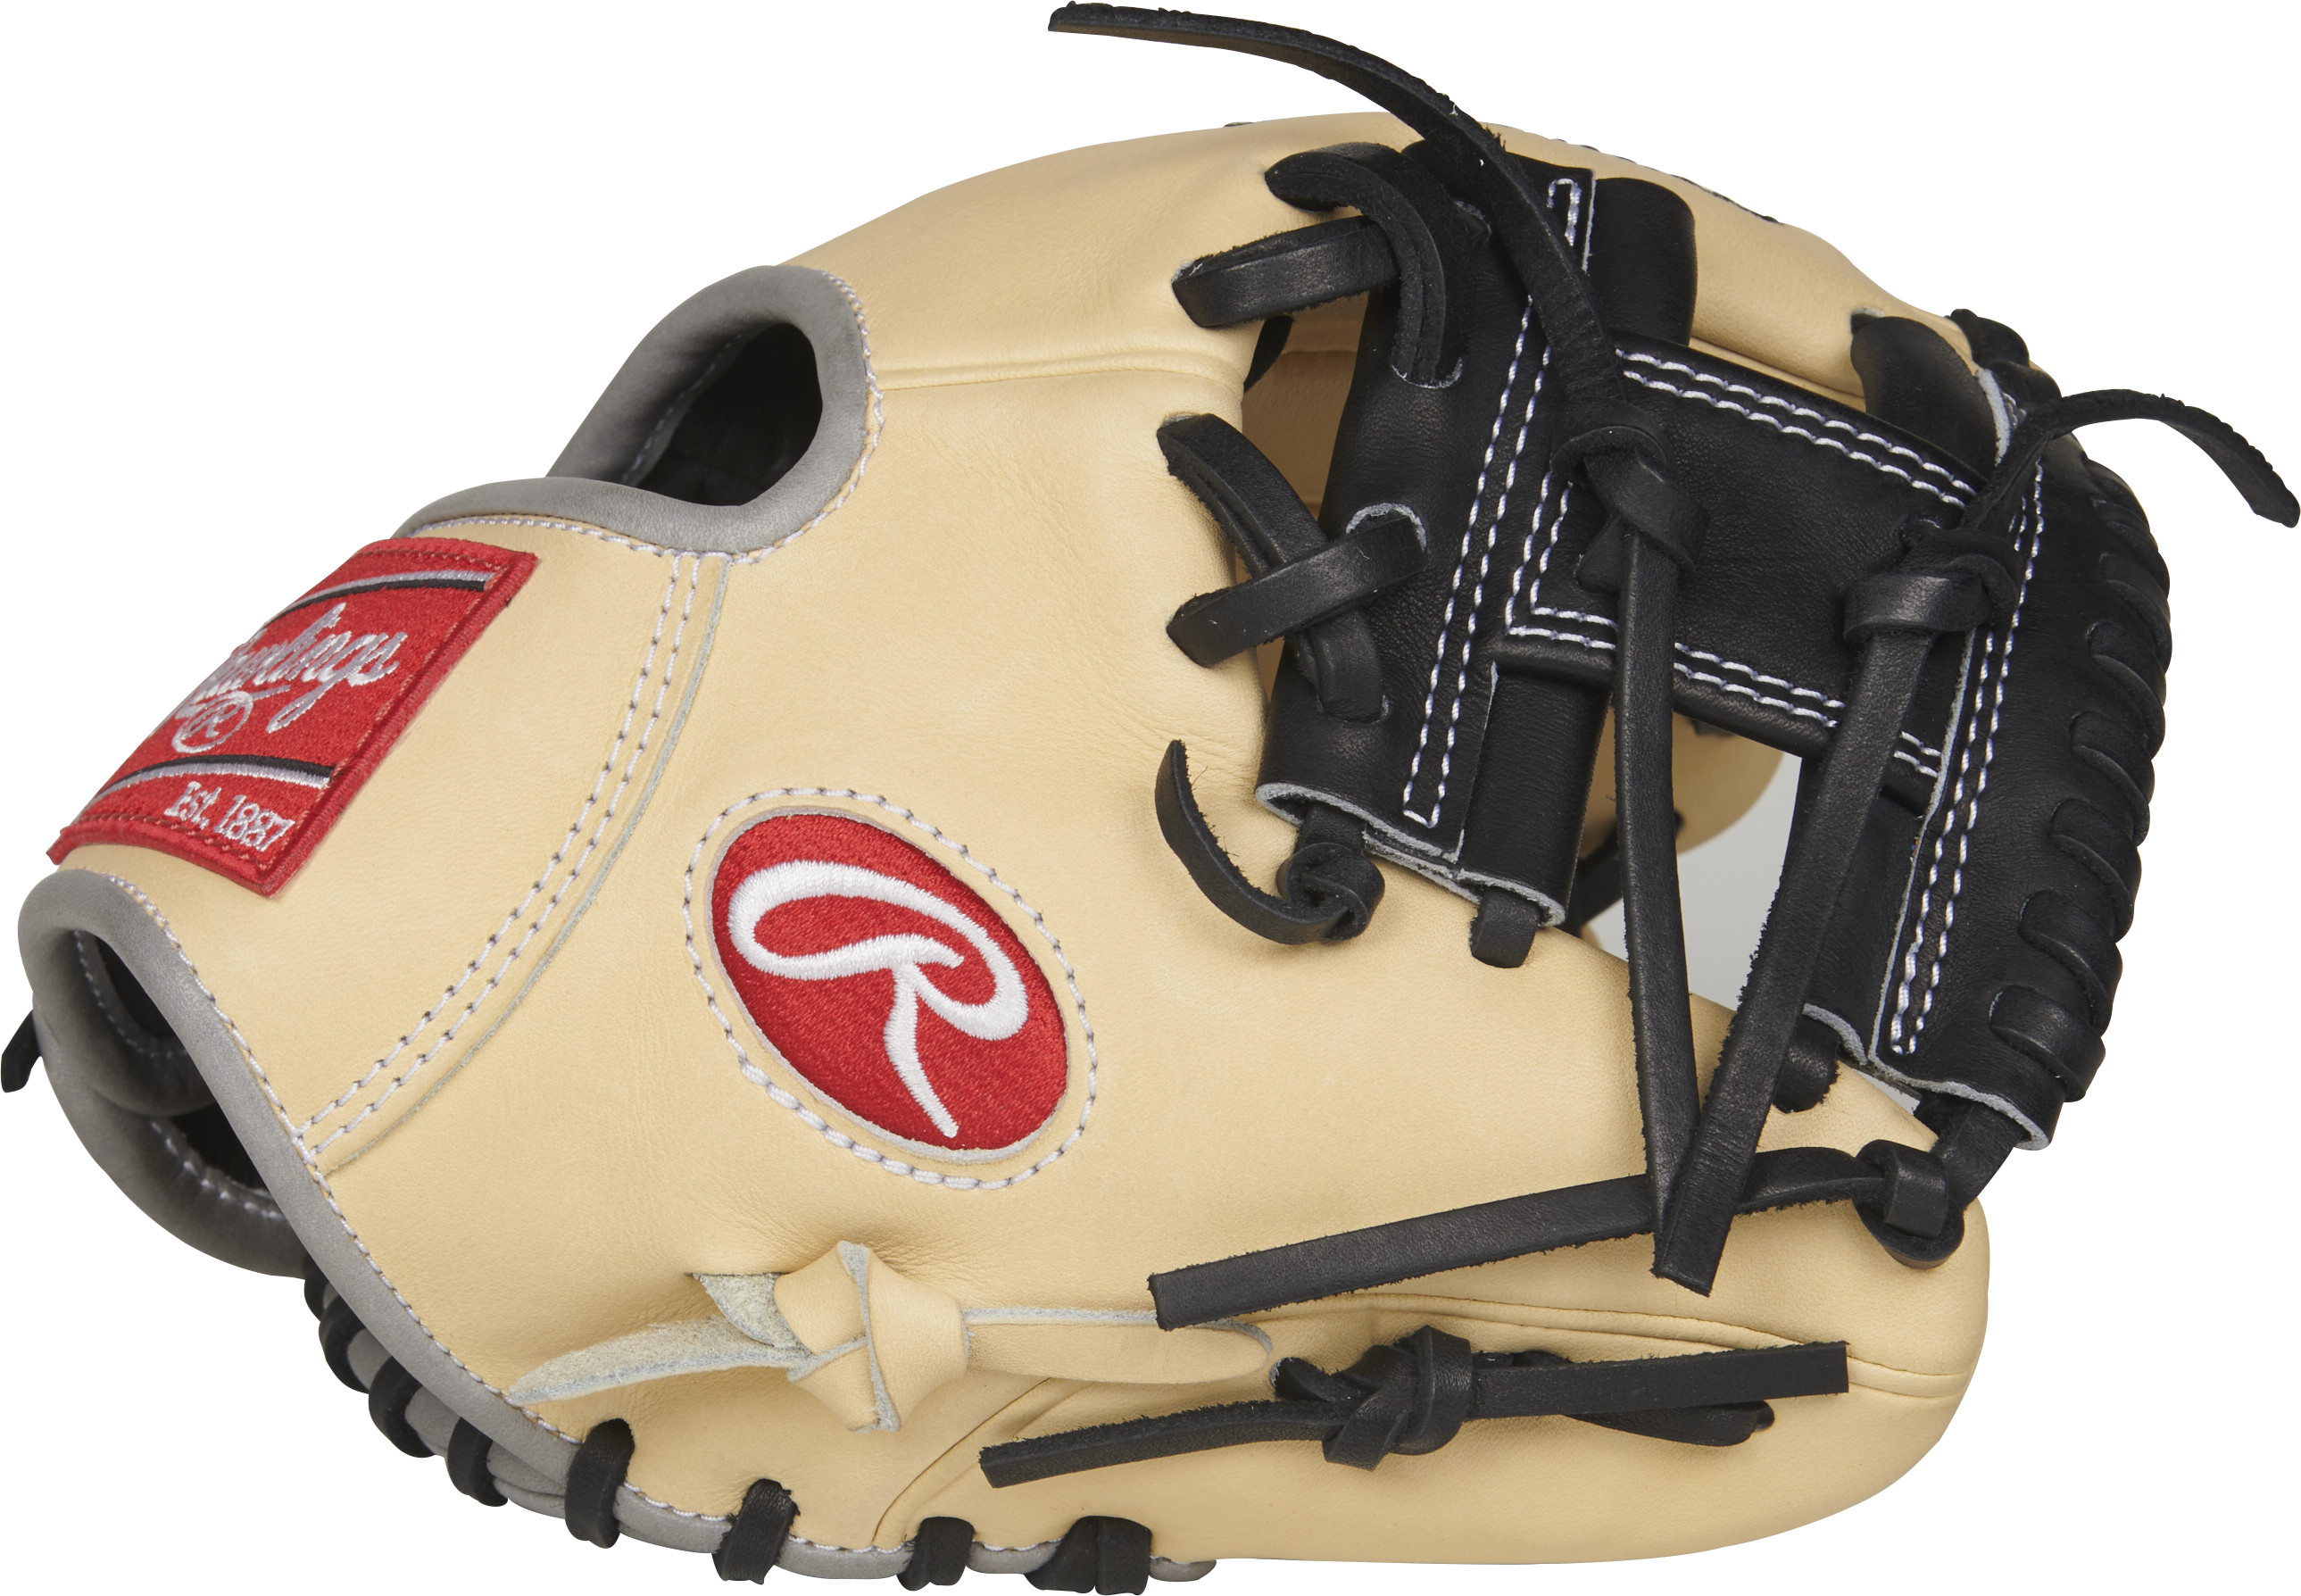 http://www.bestbatdeals.com/images/gloves/rawlings/PRO200TR-2C-3.jpg